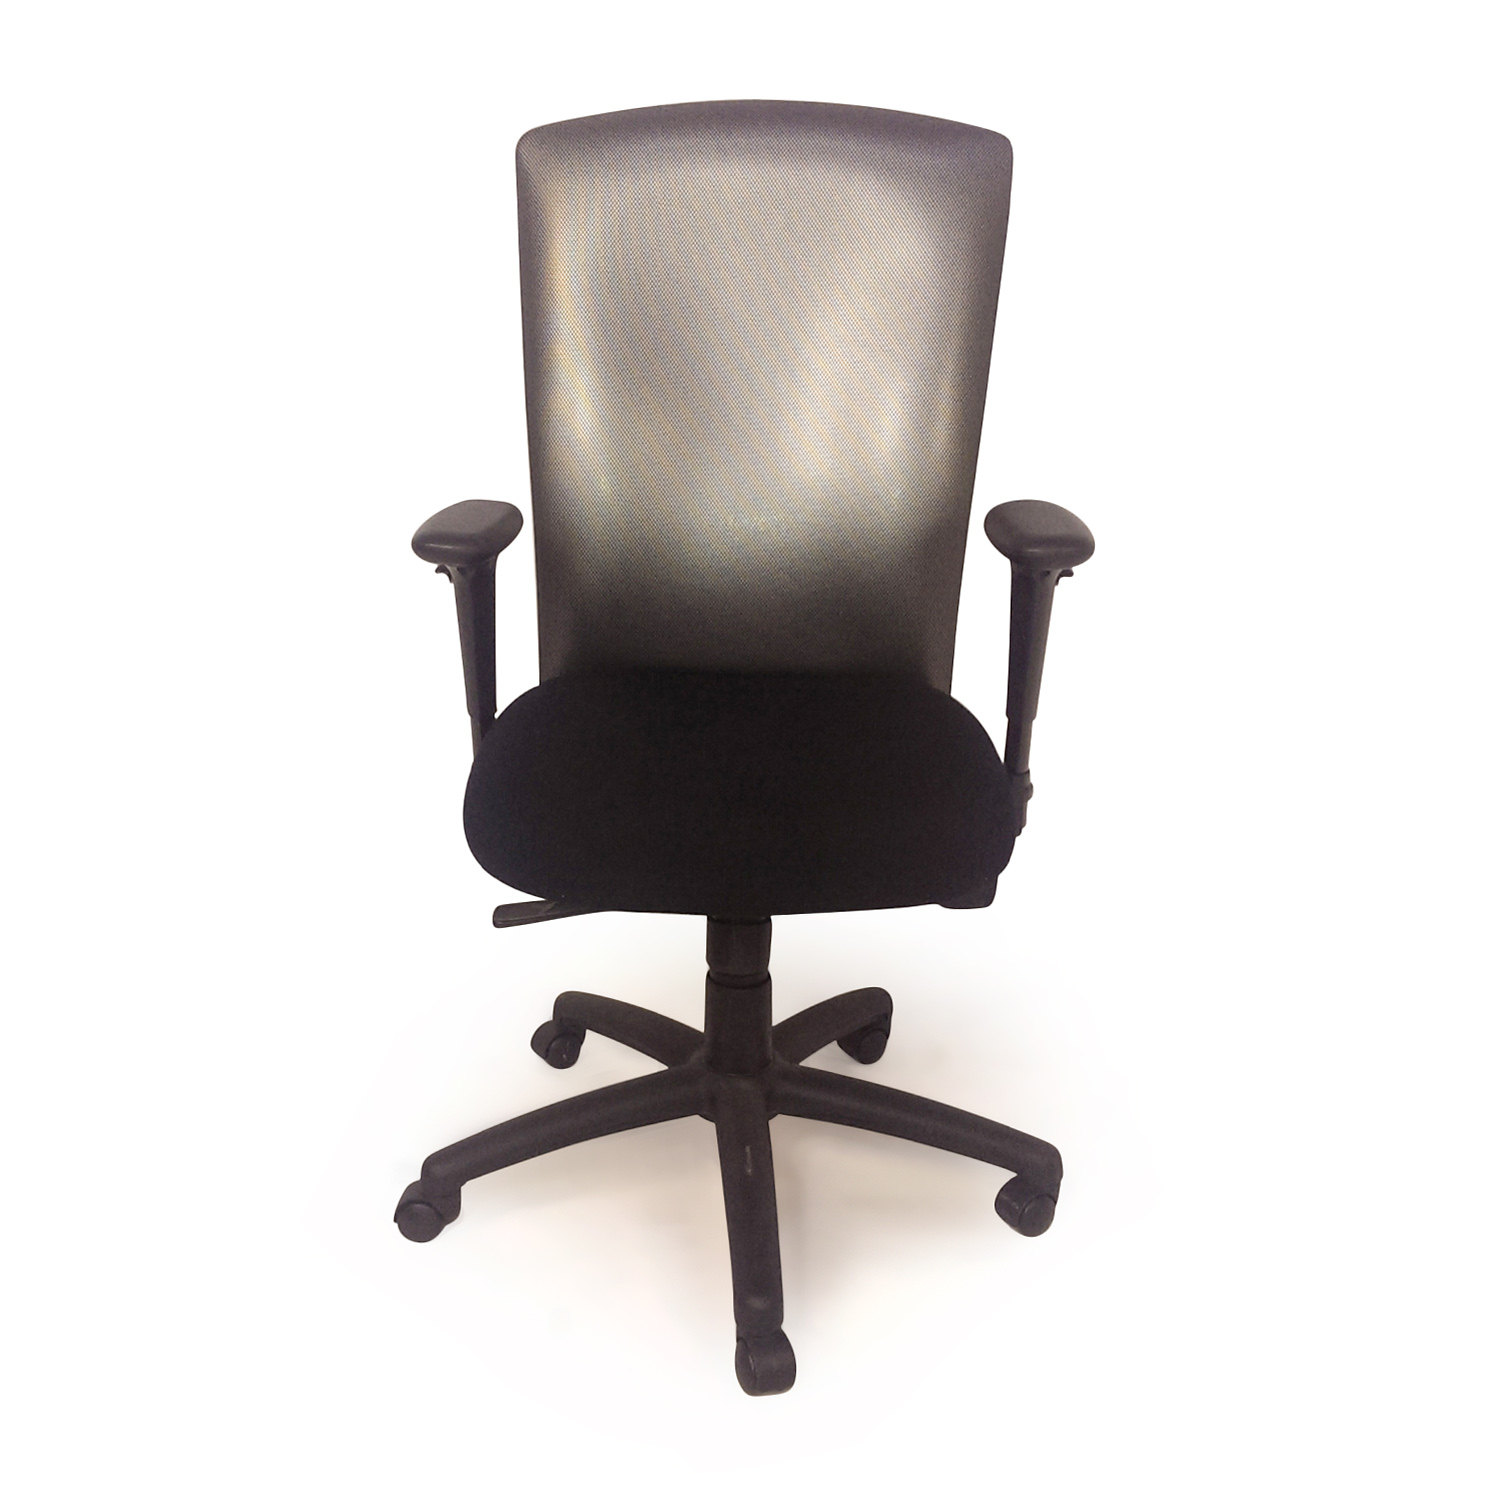 57 off black leather executive office chair chairs for Contemporary office chairs modern